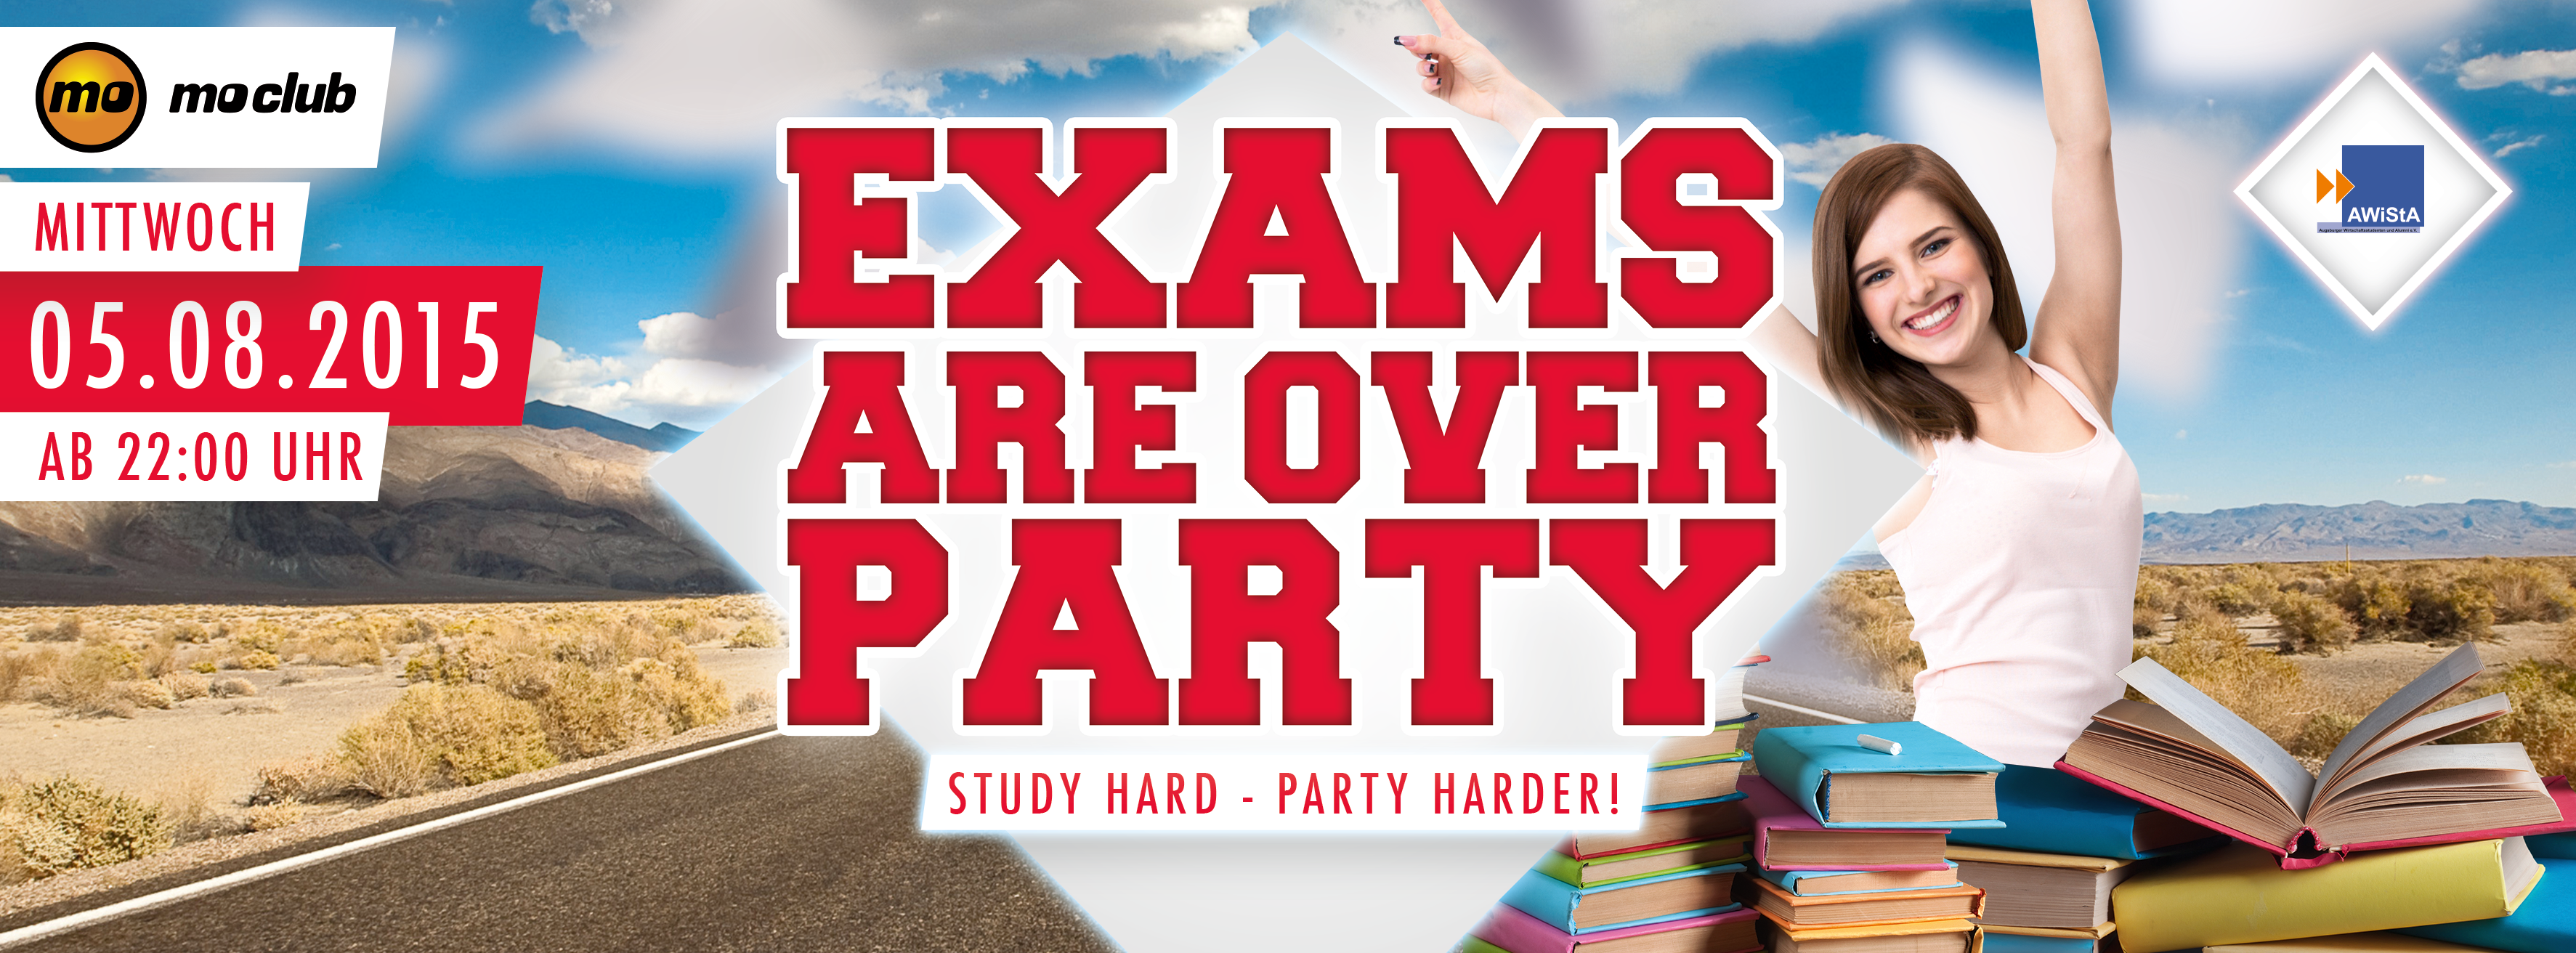 Exams_are_over_Party_05_08_15_HZ_V2.png